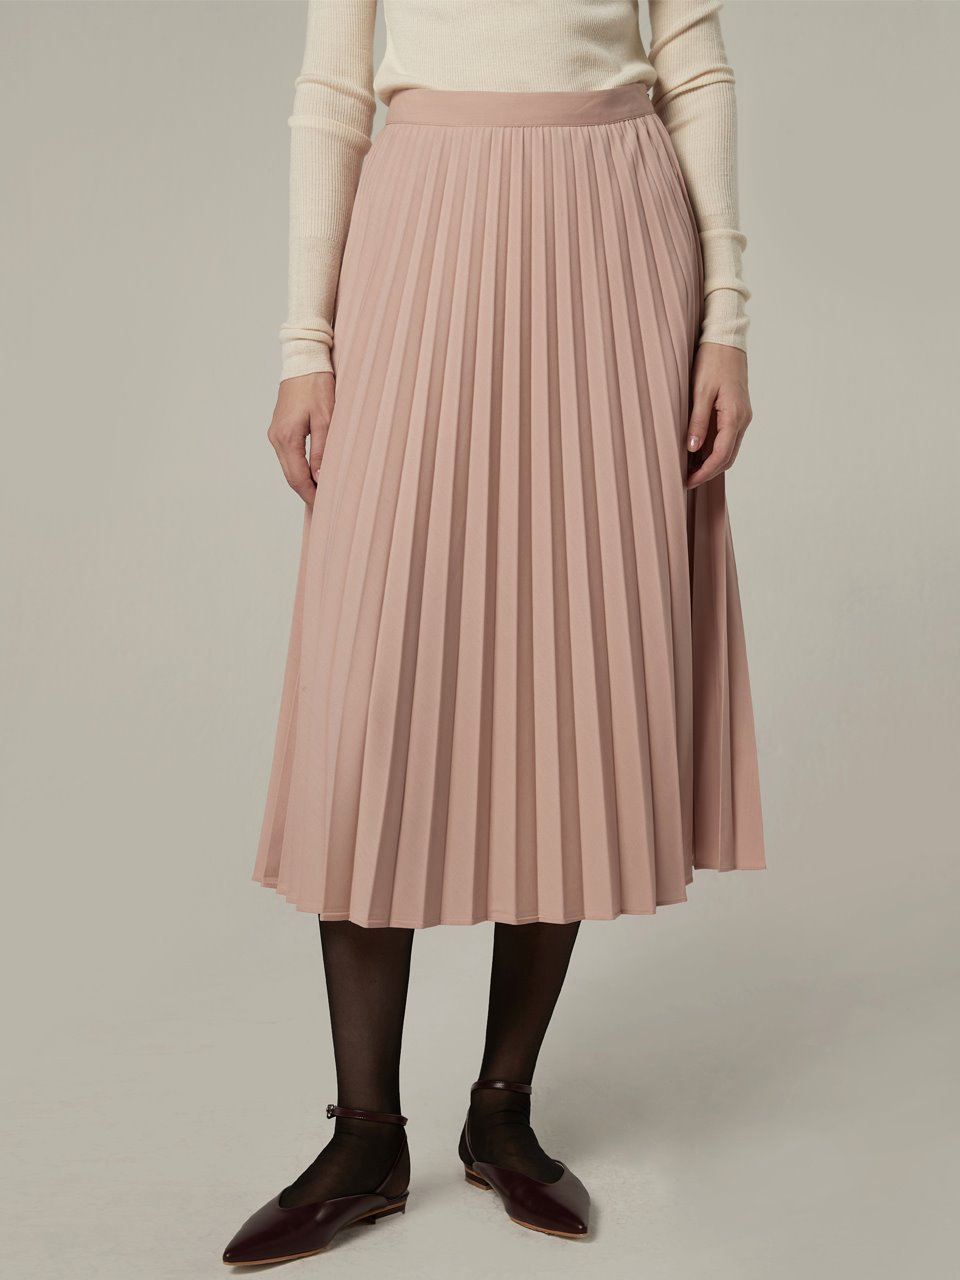 Bemuse pleats skirt - Indi pink